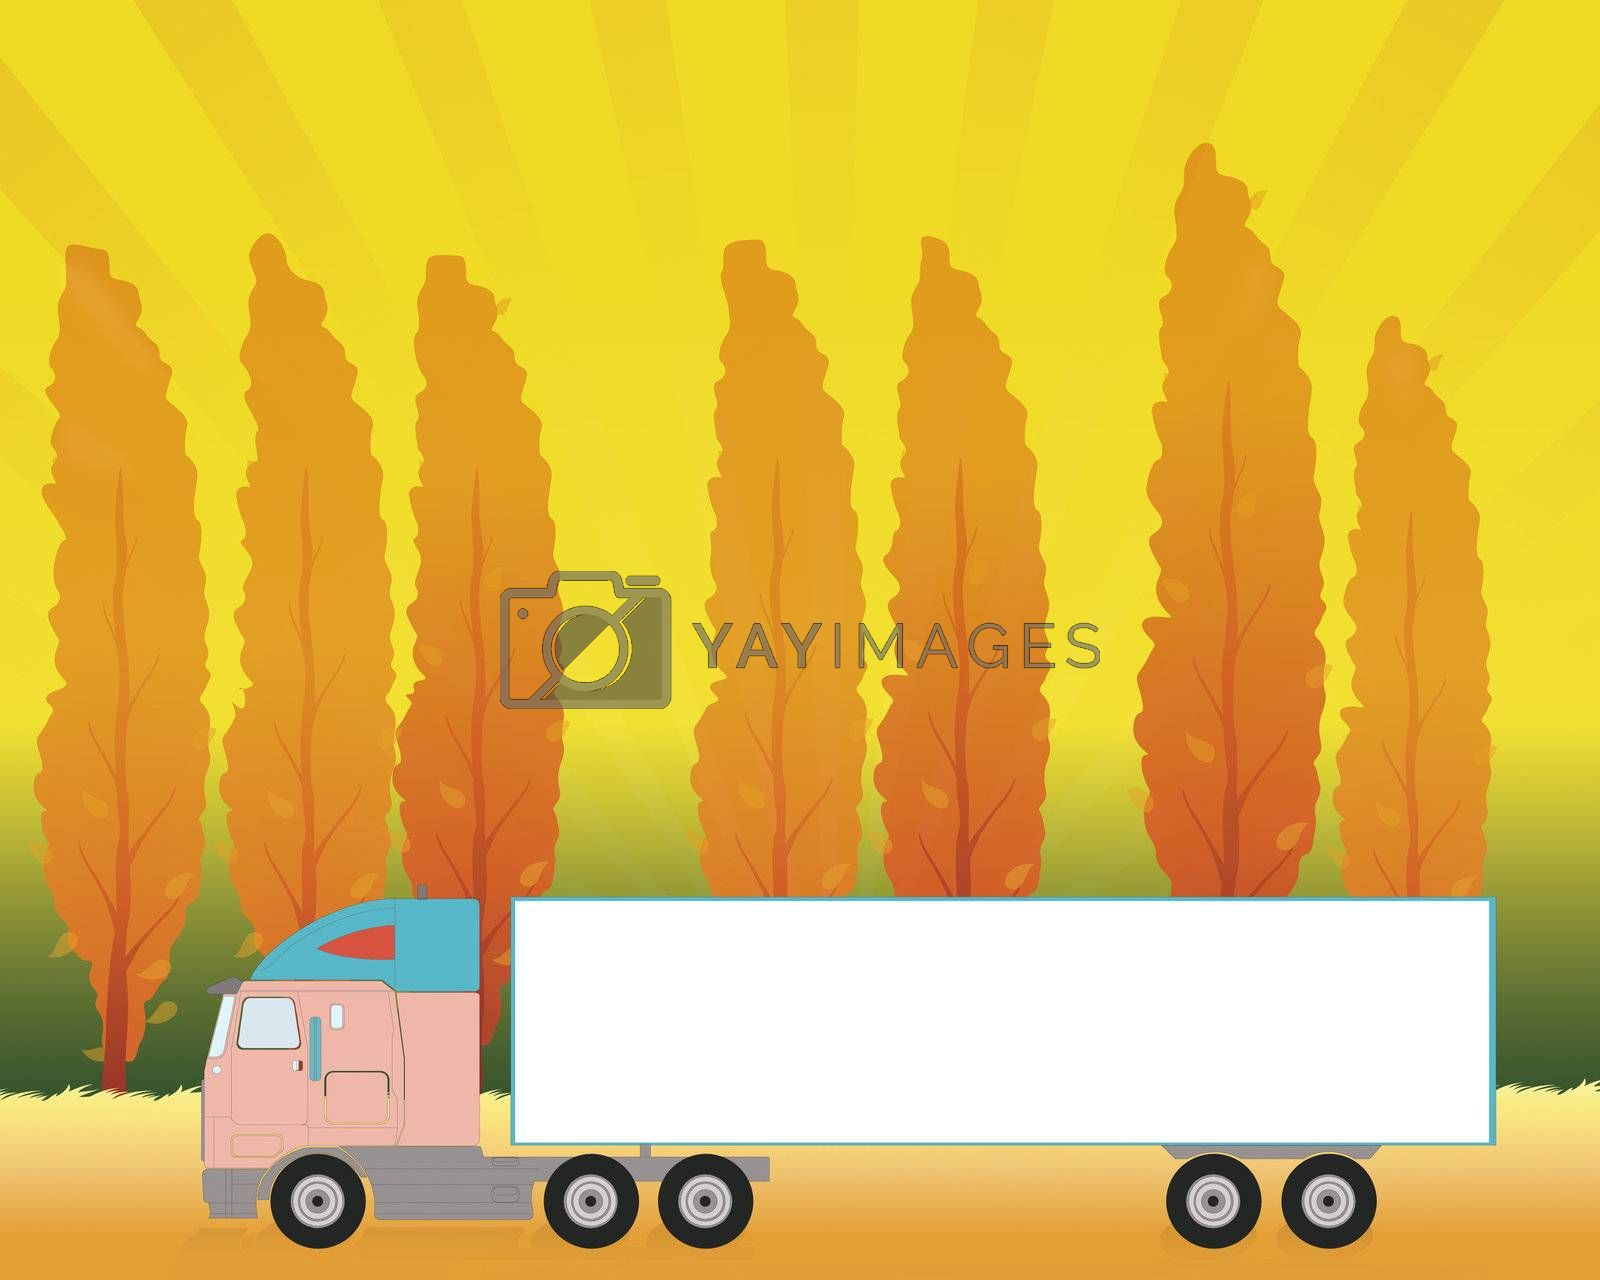 Truck in an autumn landscape. Space on the truck for adding text.